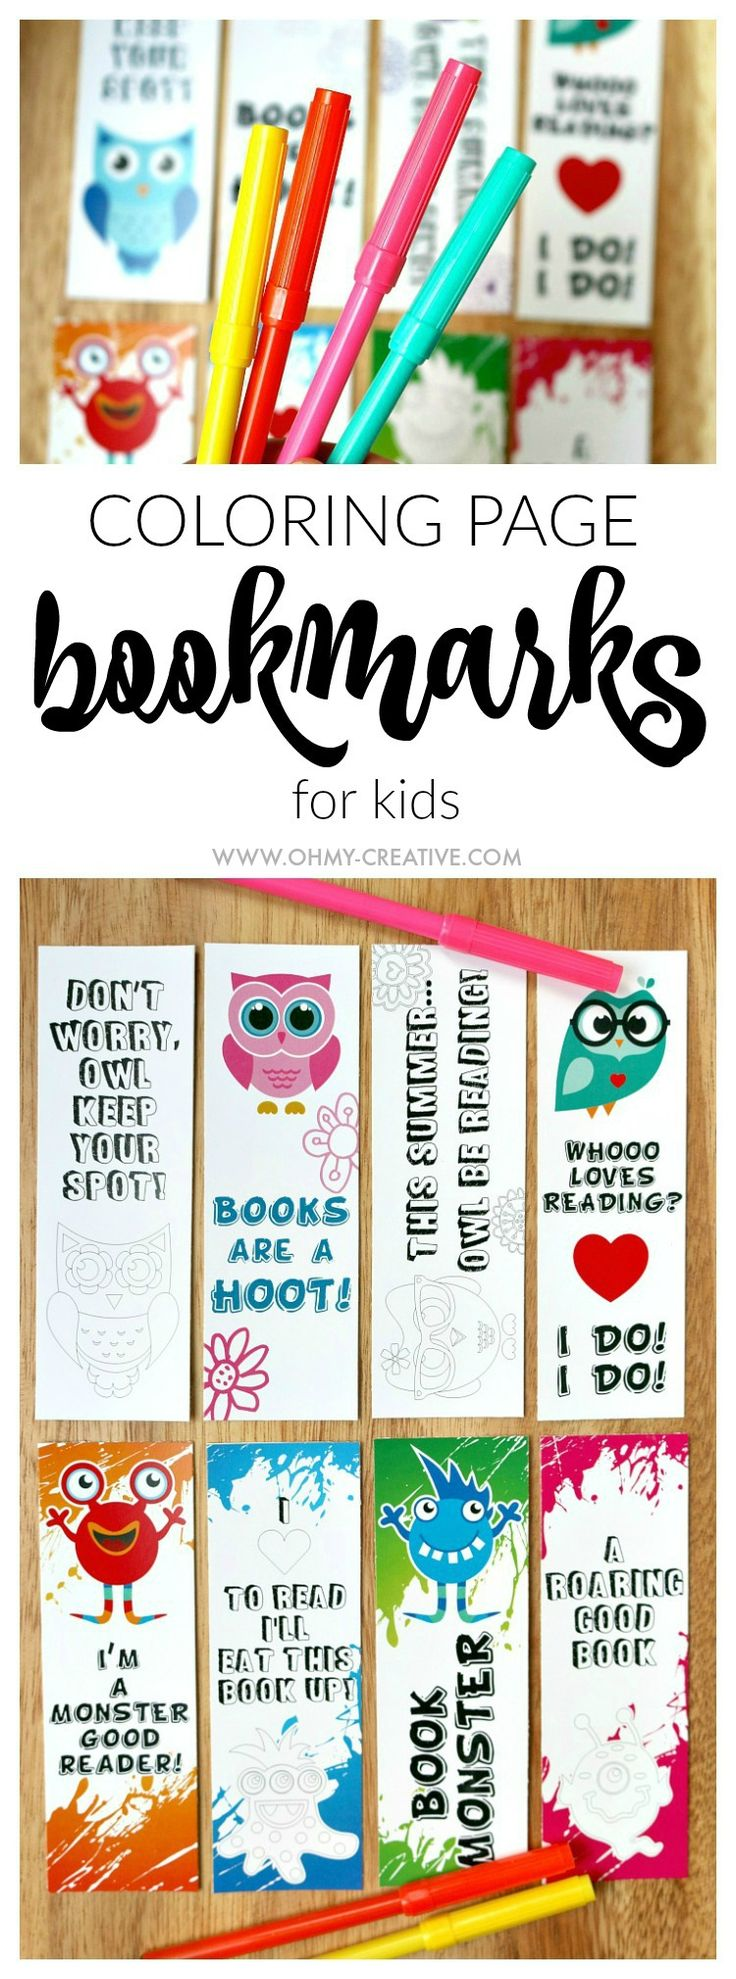 Use these adorable FREE PRINTABLE BOOKMARK COLORING PAGES to get the kids interested in reading and keep their place while they are reading a book from day to day. There are two set of coloring page bookmarks available: cute little monsters and fun adorable owls. Download and print one or both sets!